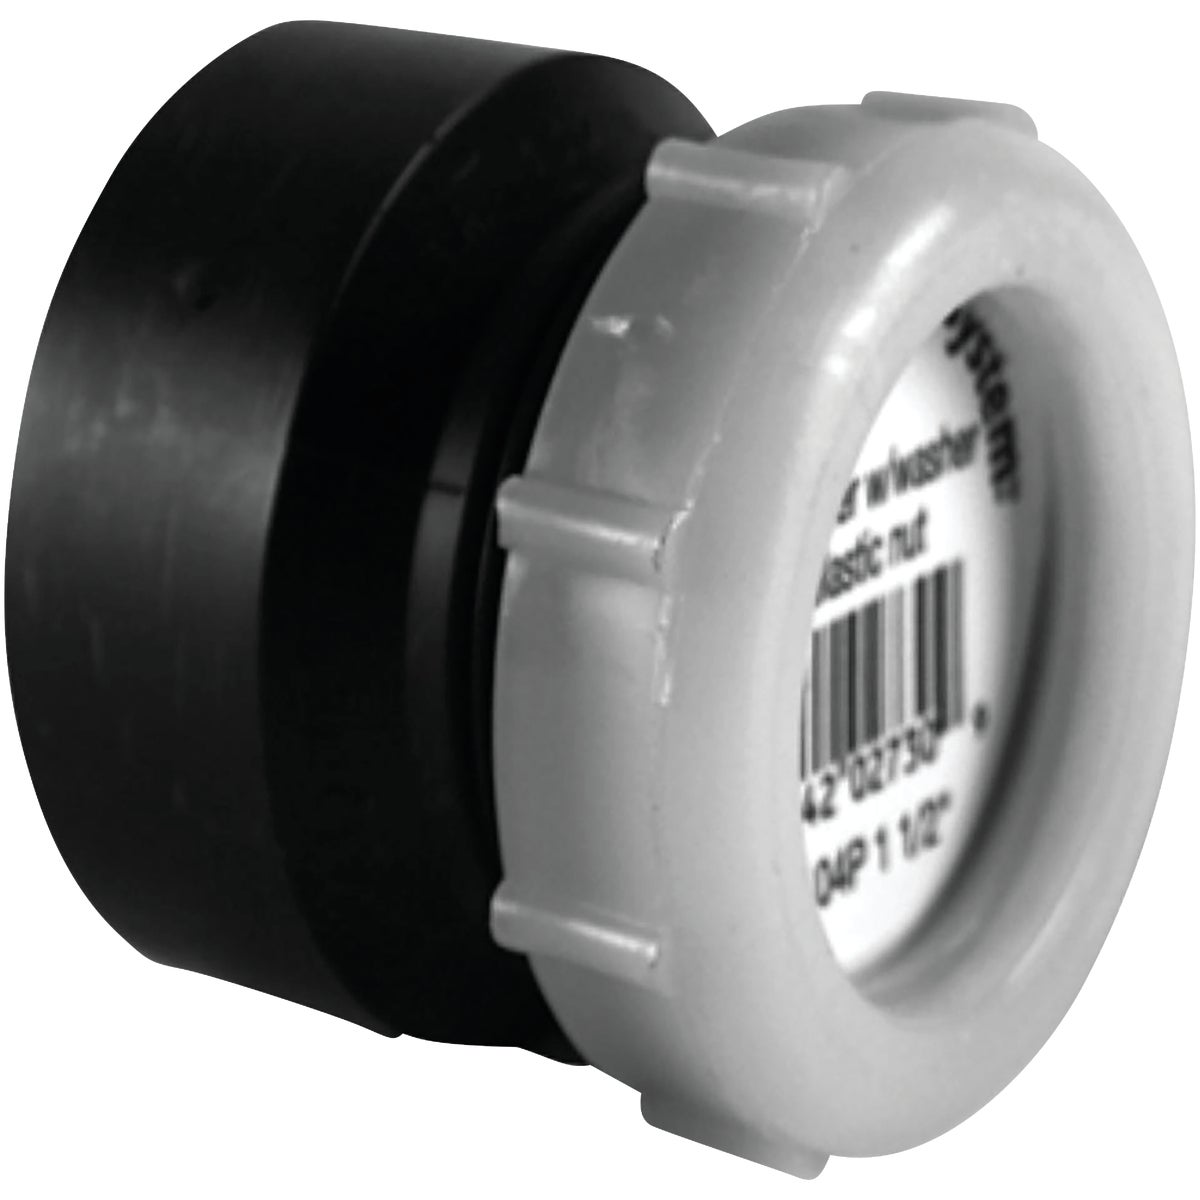 1-1/2X1-1/2 ABS ADAPTER - 82215 by Genova Inc  Abs